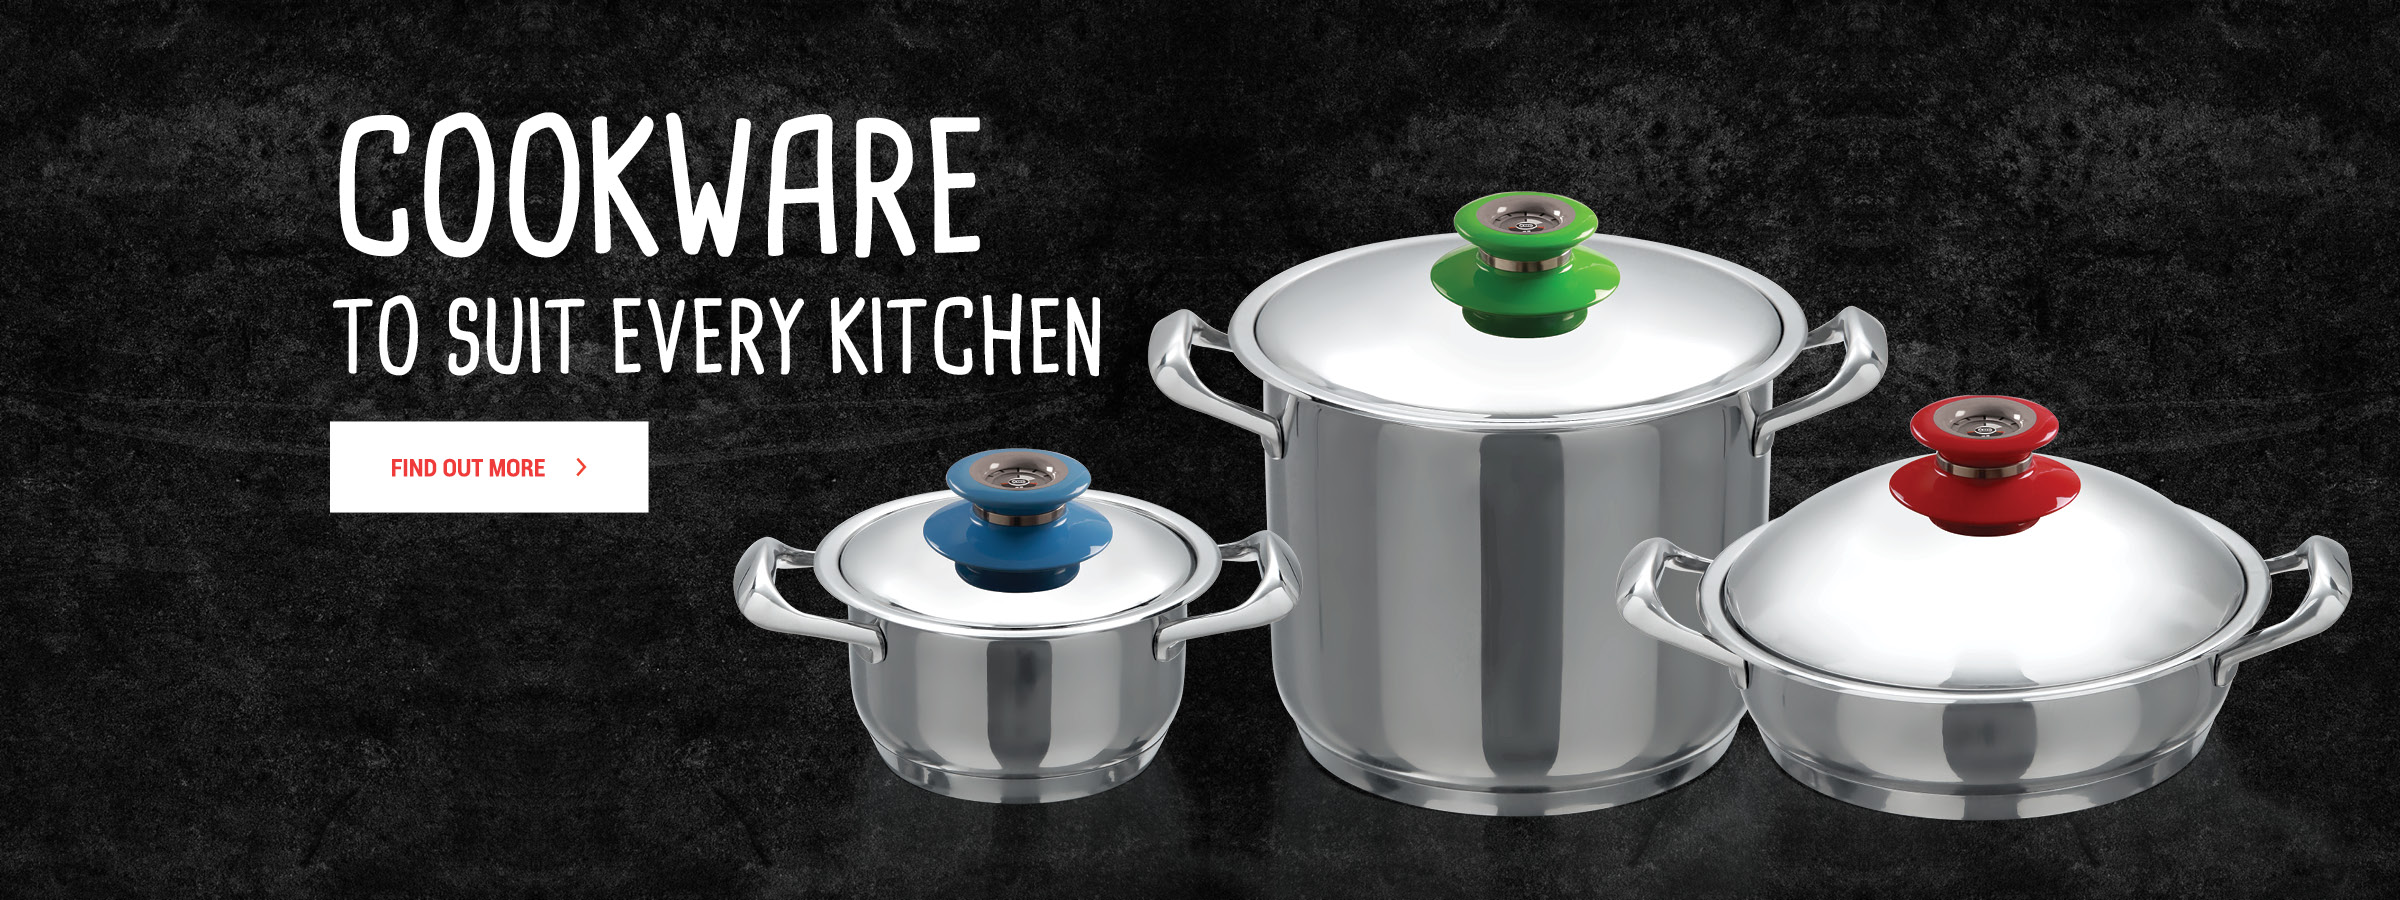 Cookware for every kitchen